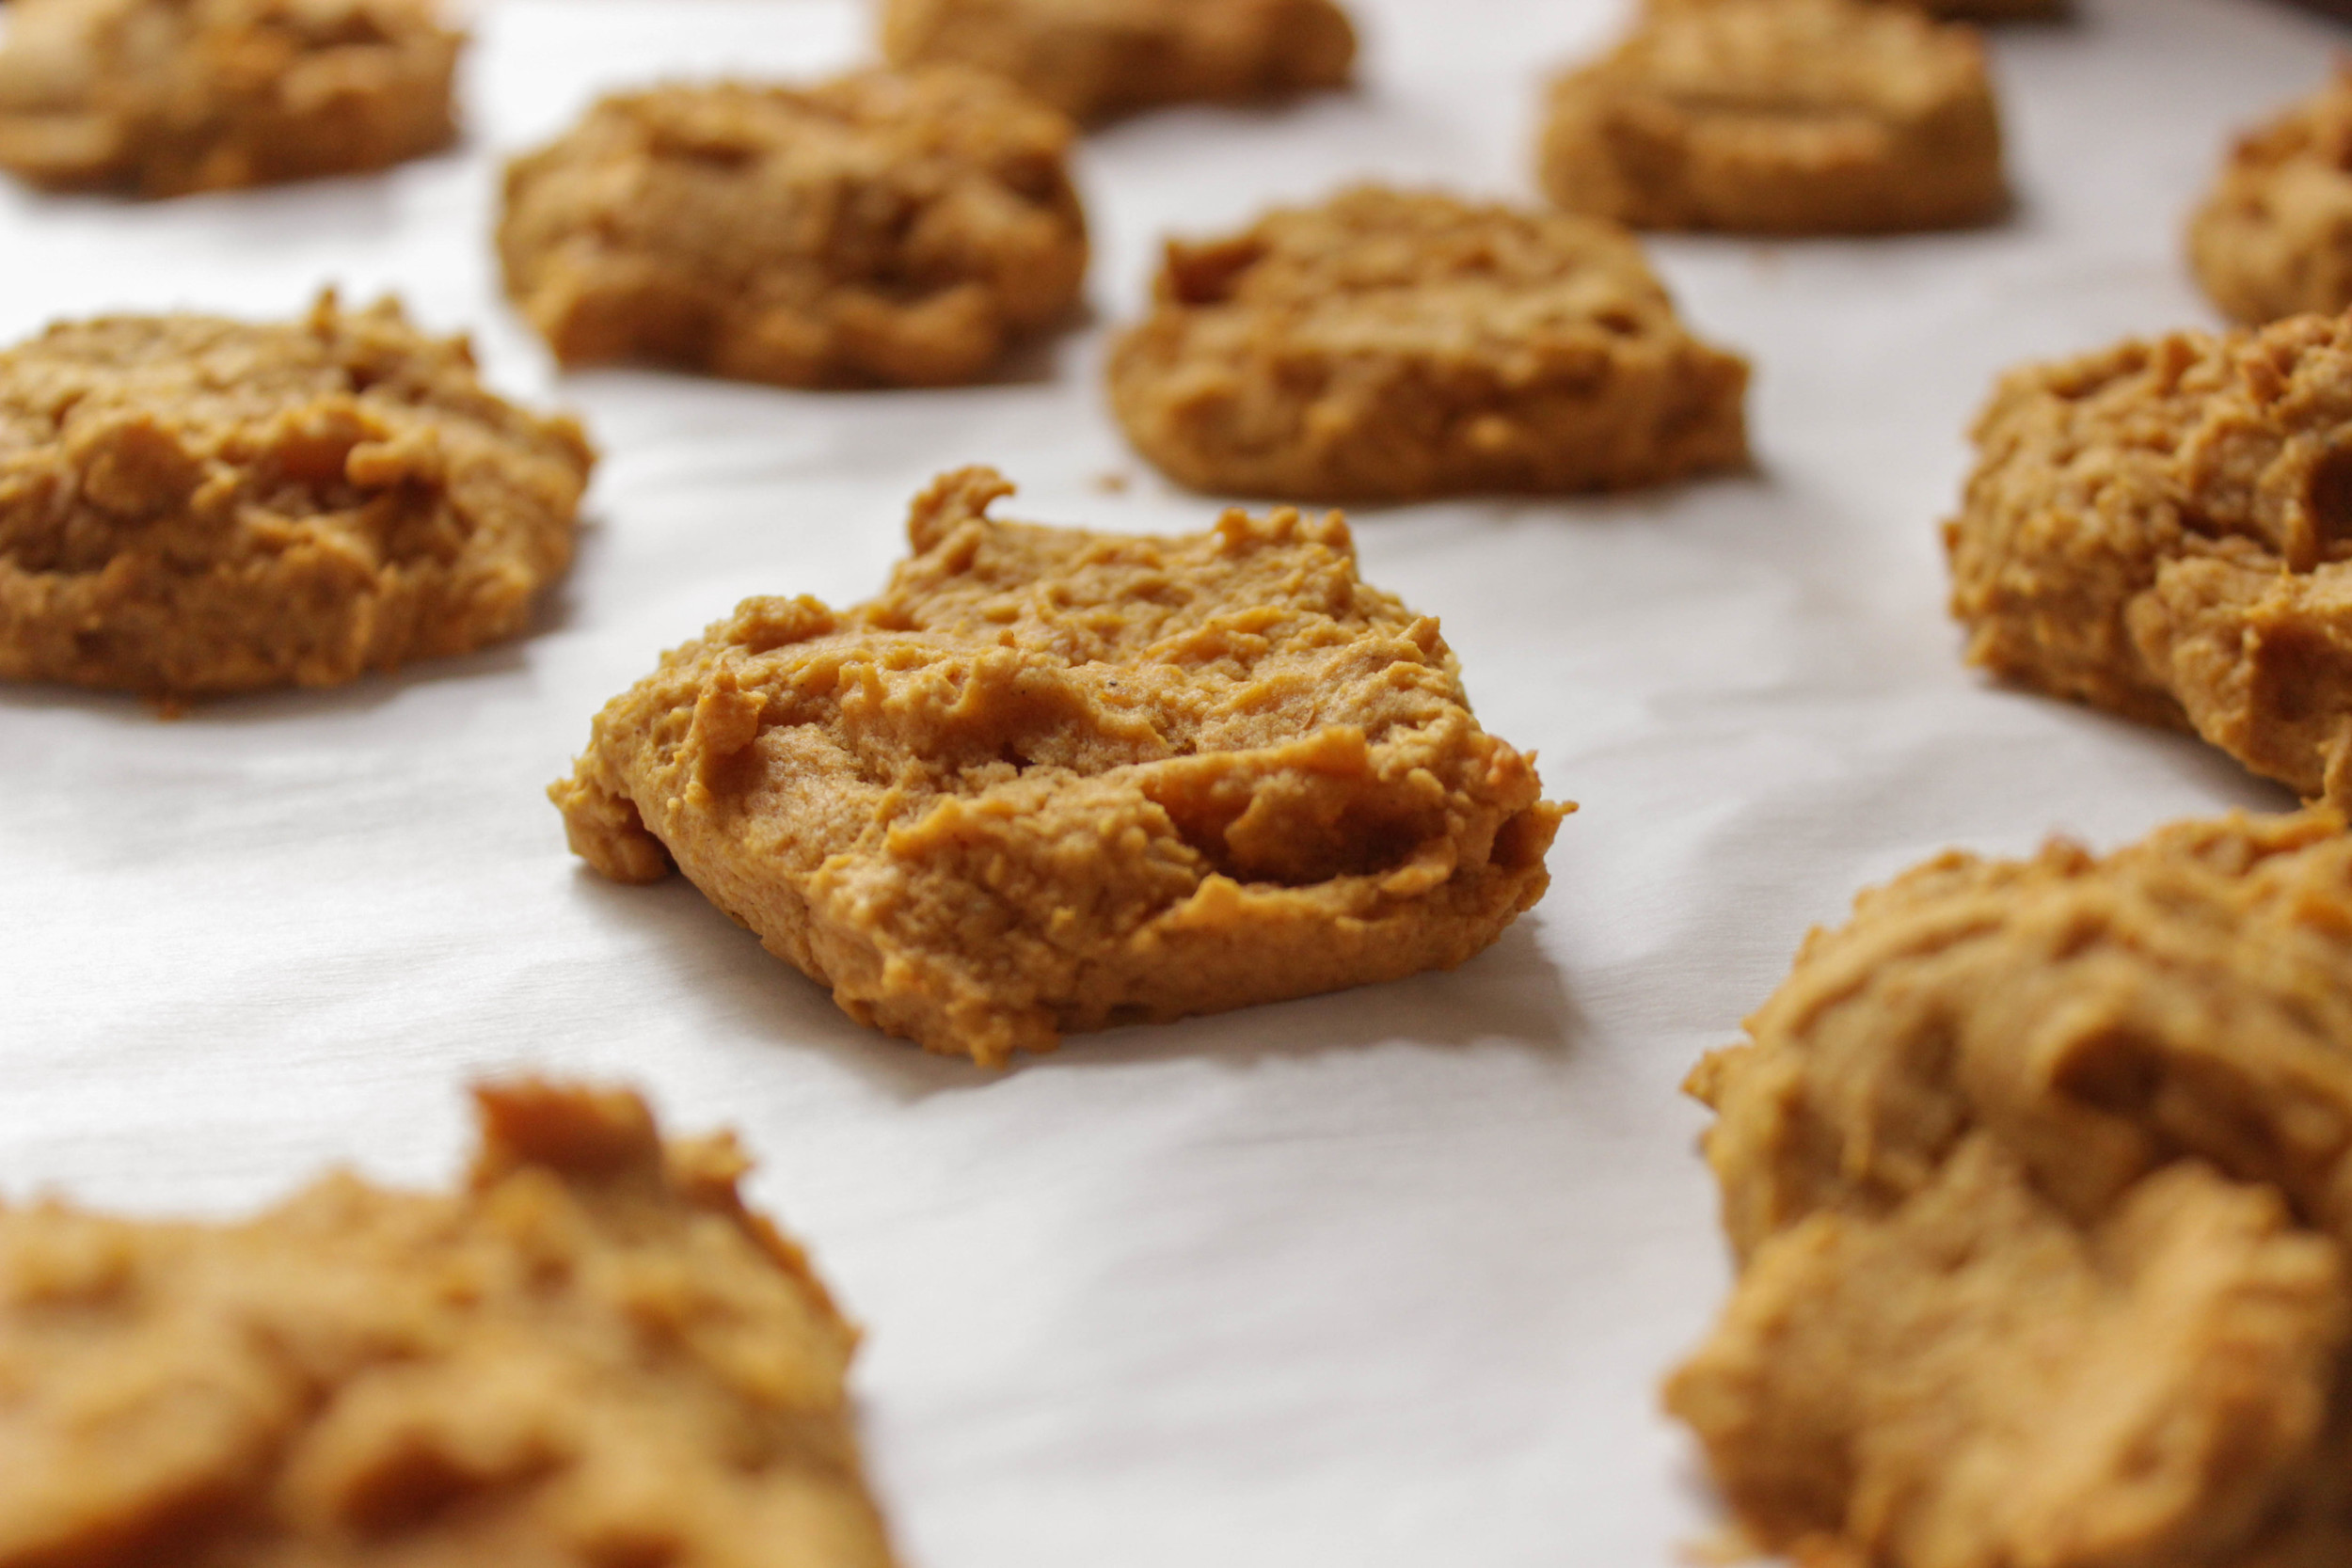 Bake the cookies for 12-15 minutes, until very lightly browned and the center springs back up when you poke it. Let them cool on the sheet for a few minutes before transferring them on the parchment to cooling racks.